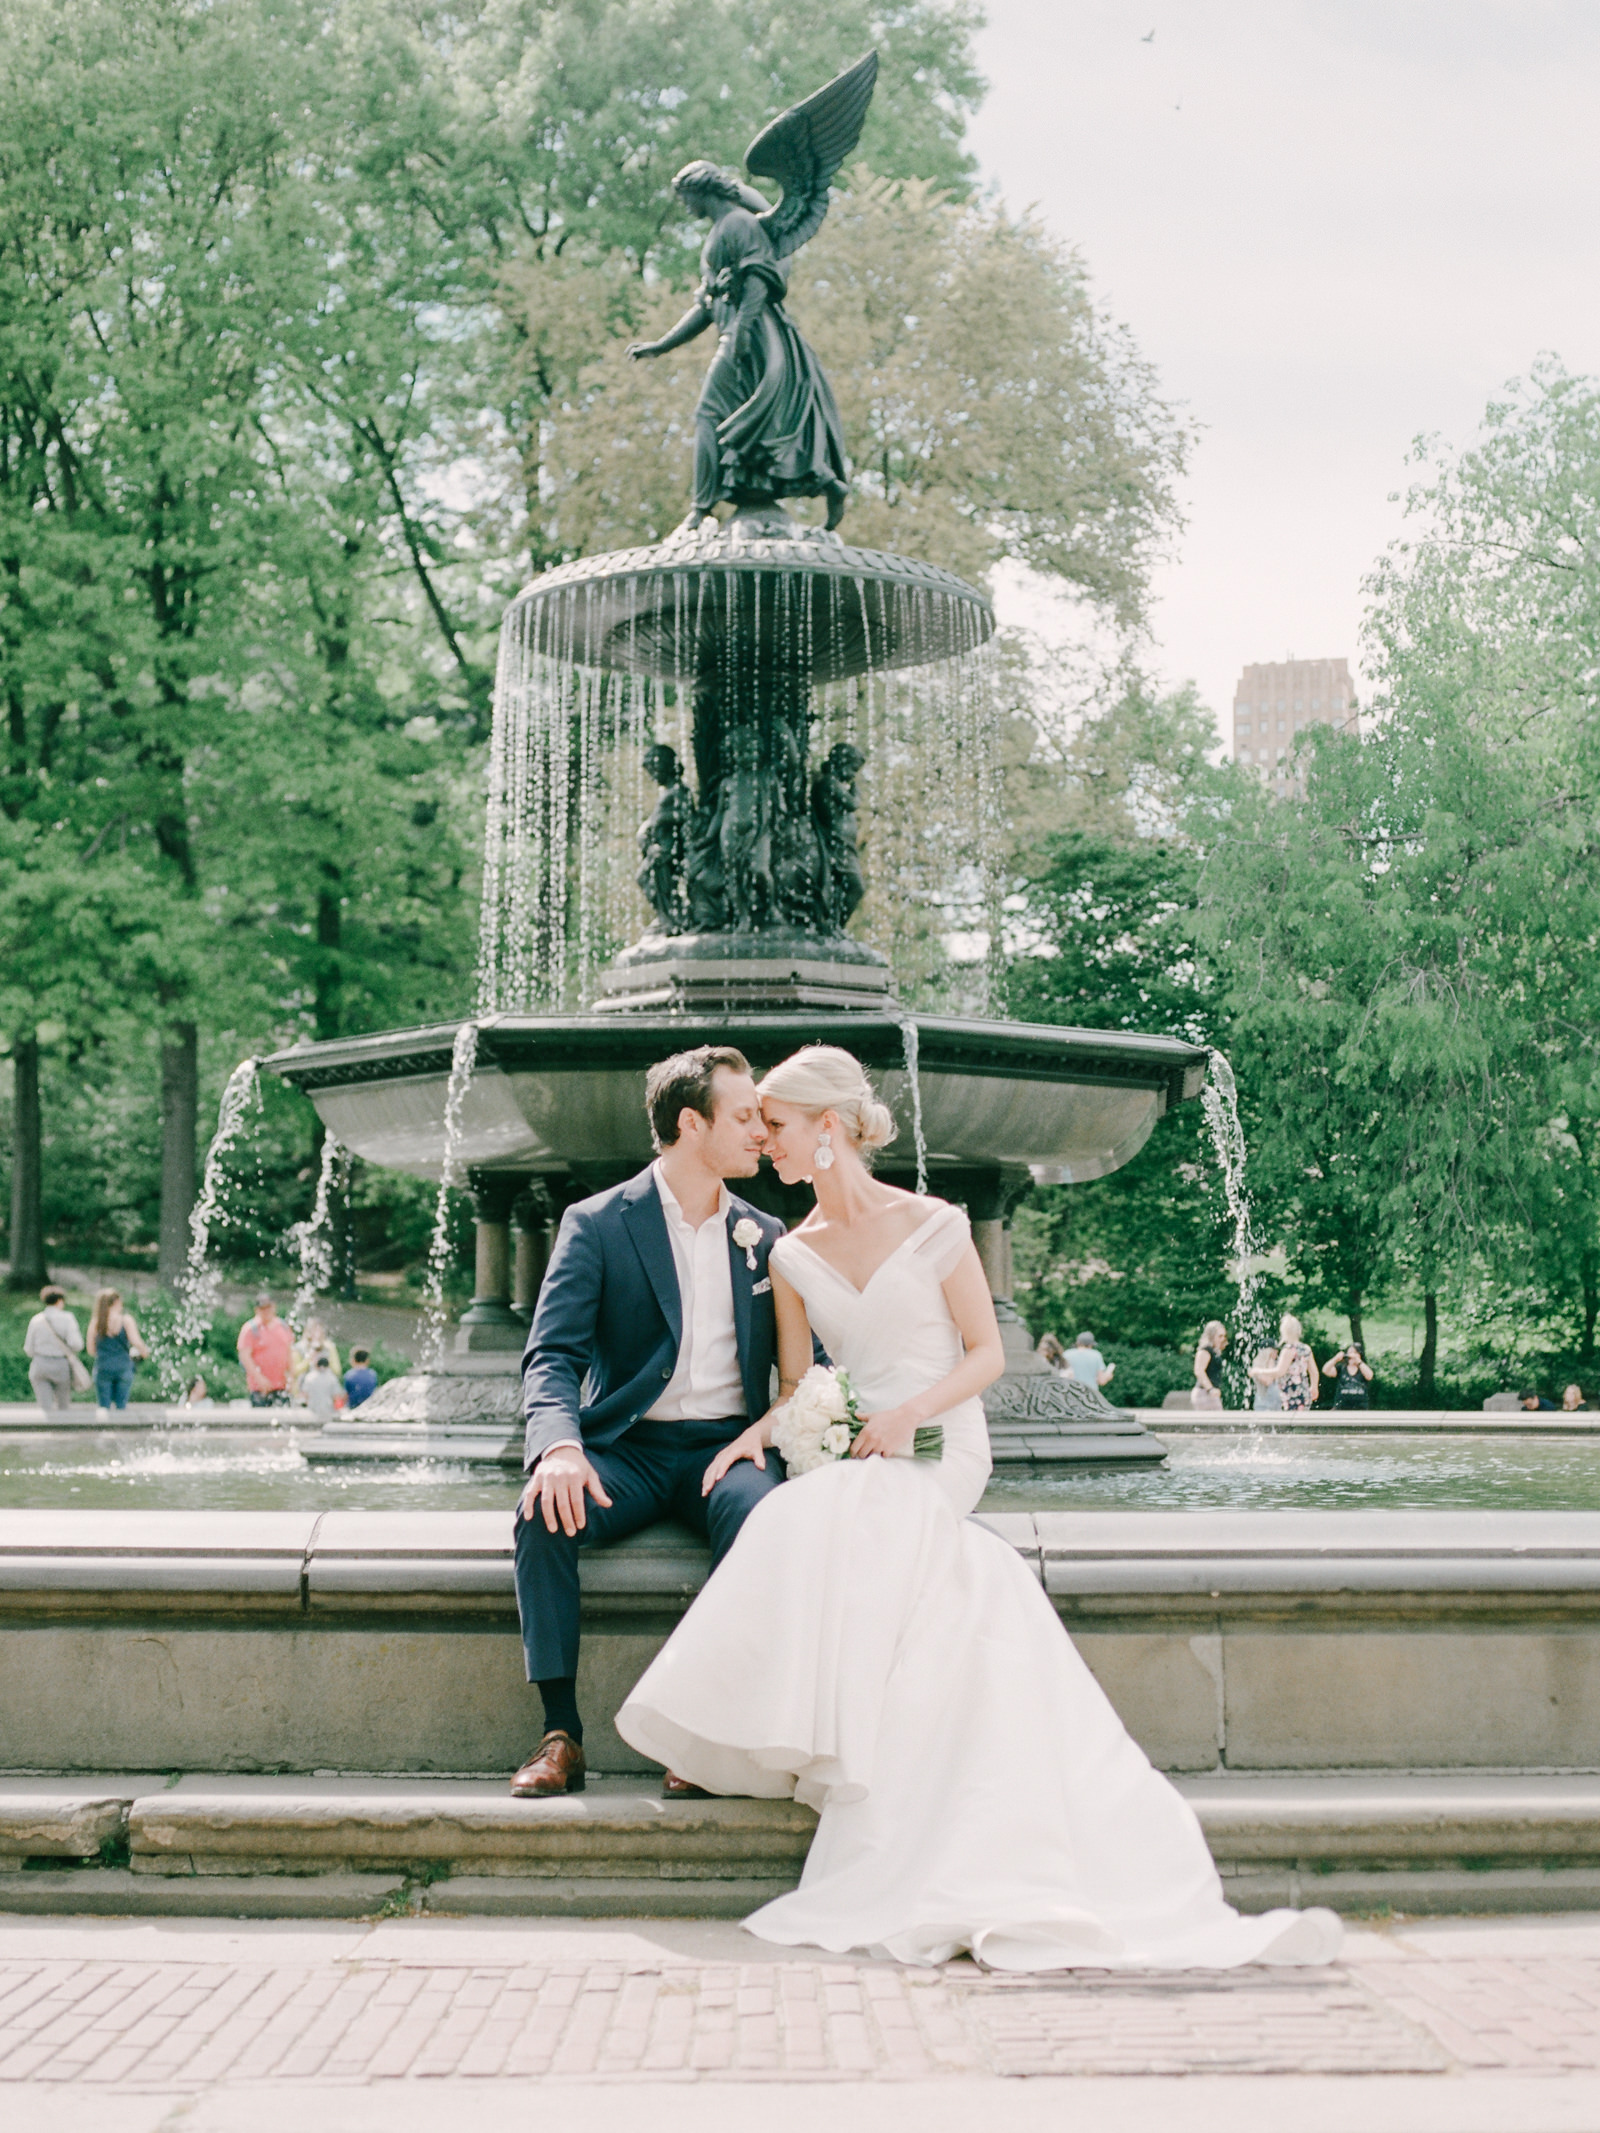 Intimate-NYC_wedding_ by Tanya Isaeva-111.jpg